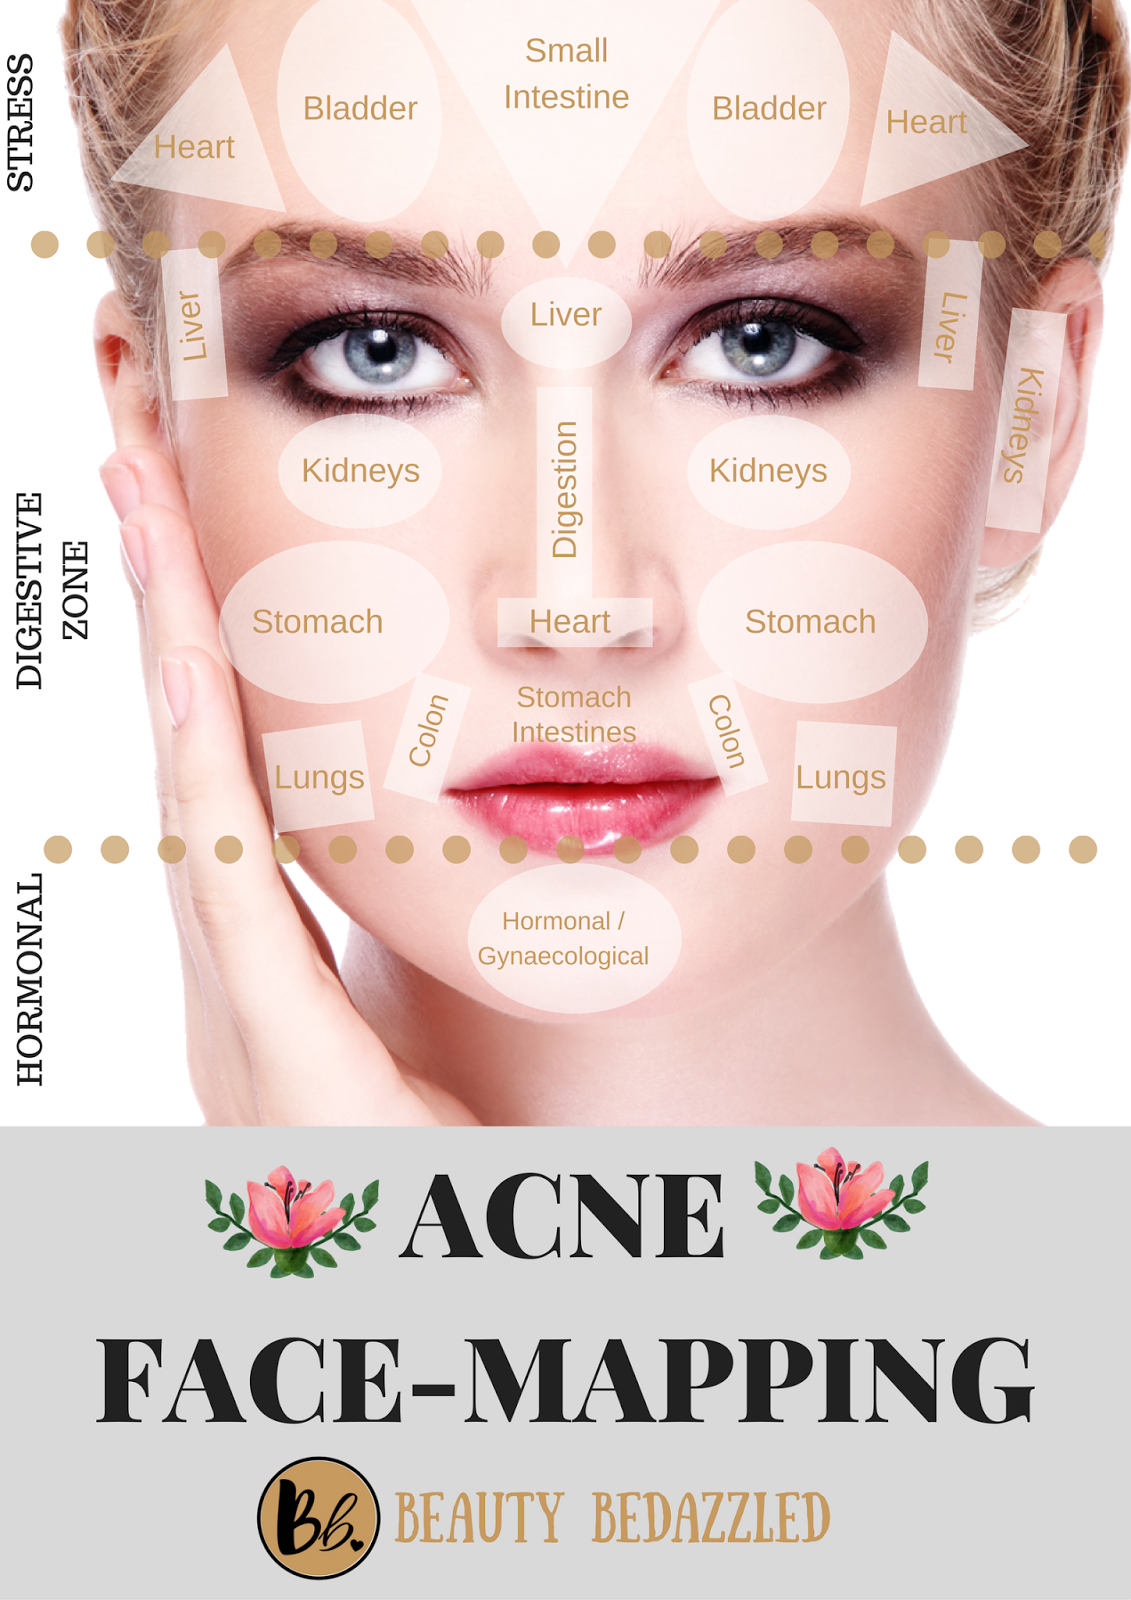 According to many reflexologists and chinese medicine practitioners spots pimples on your face map out internal health problems also acne mapping what does tell you skincare rh pinterest